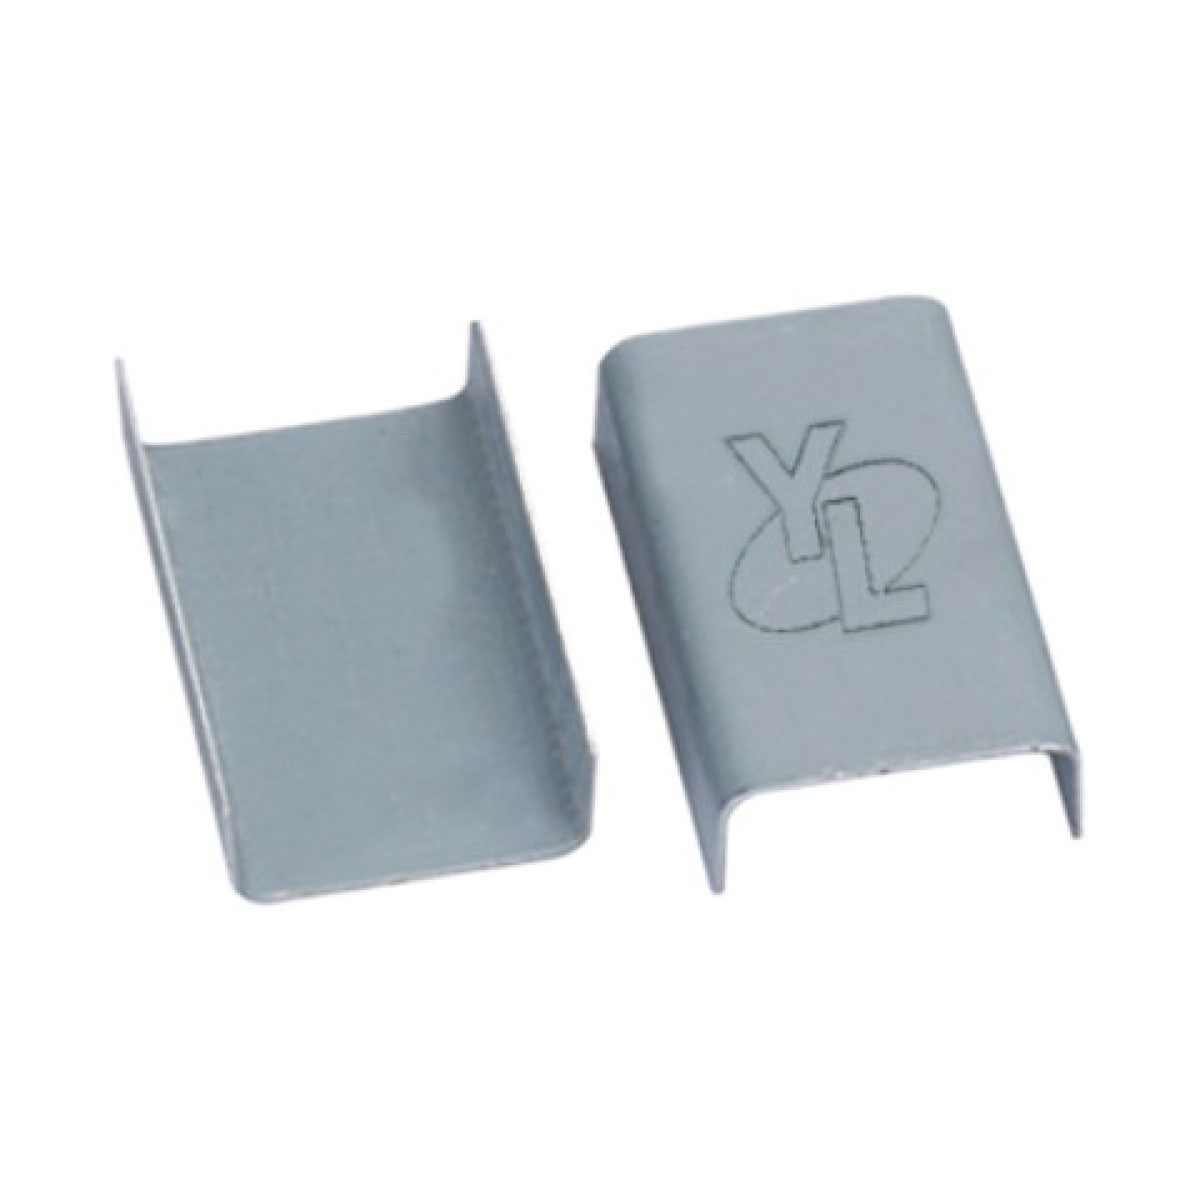 U-type Strapping Seals for Manual Strapping (16mm / 19mm / 32mm)